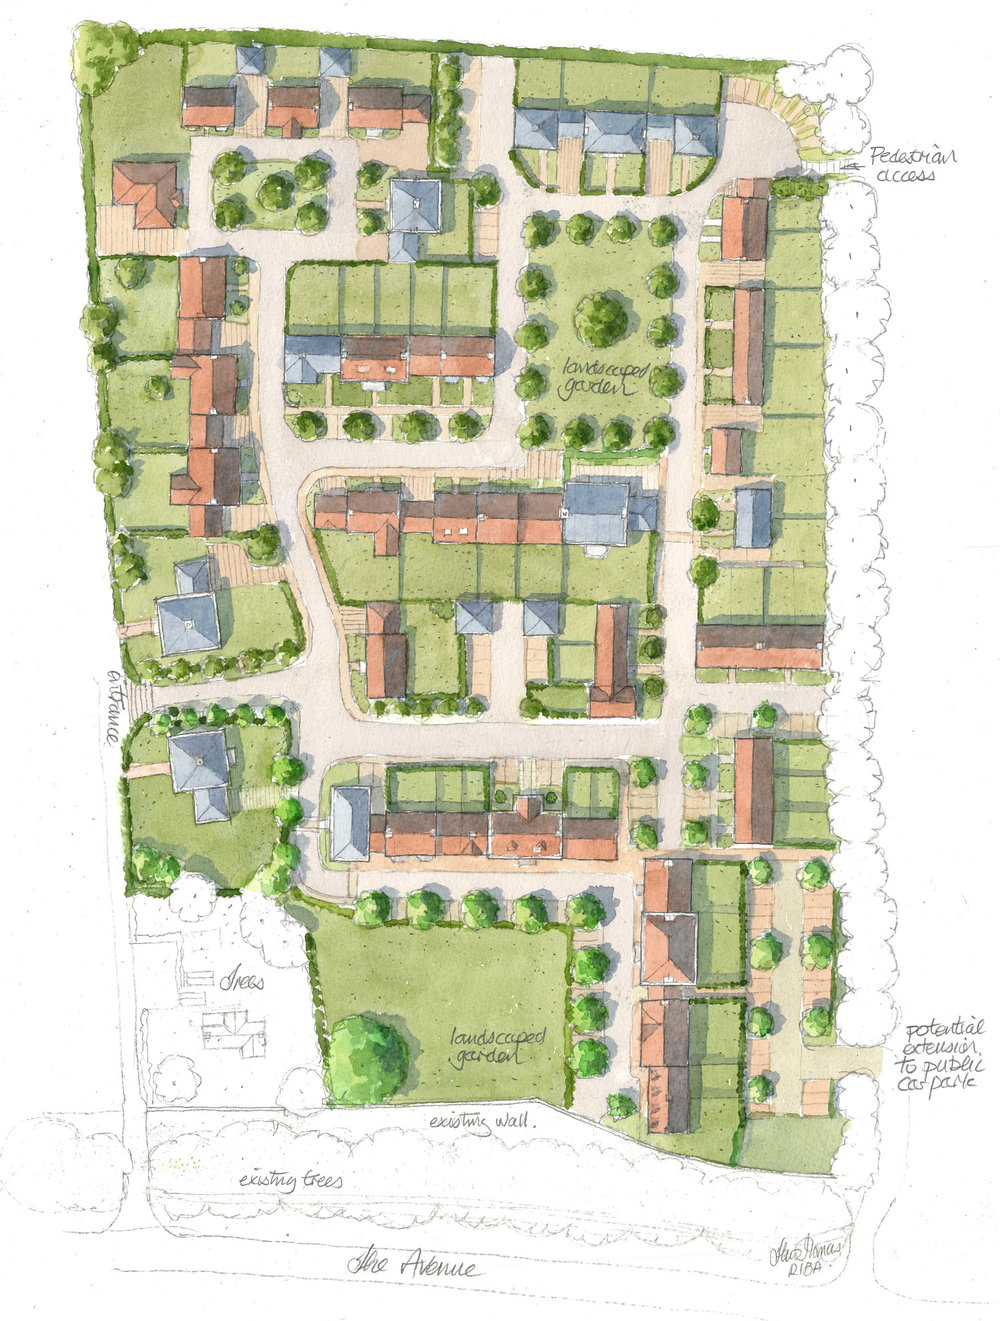 alderwood site plan, alresford